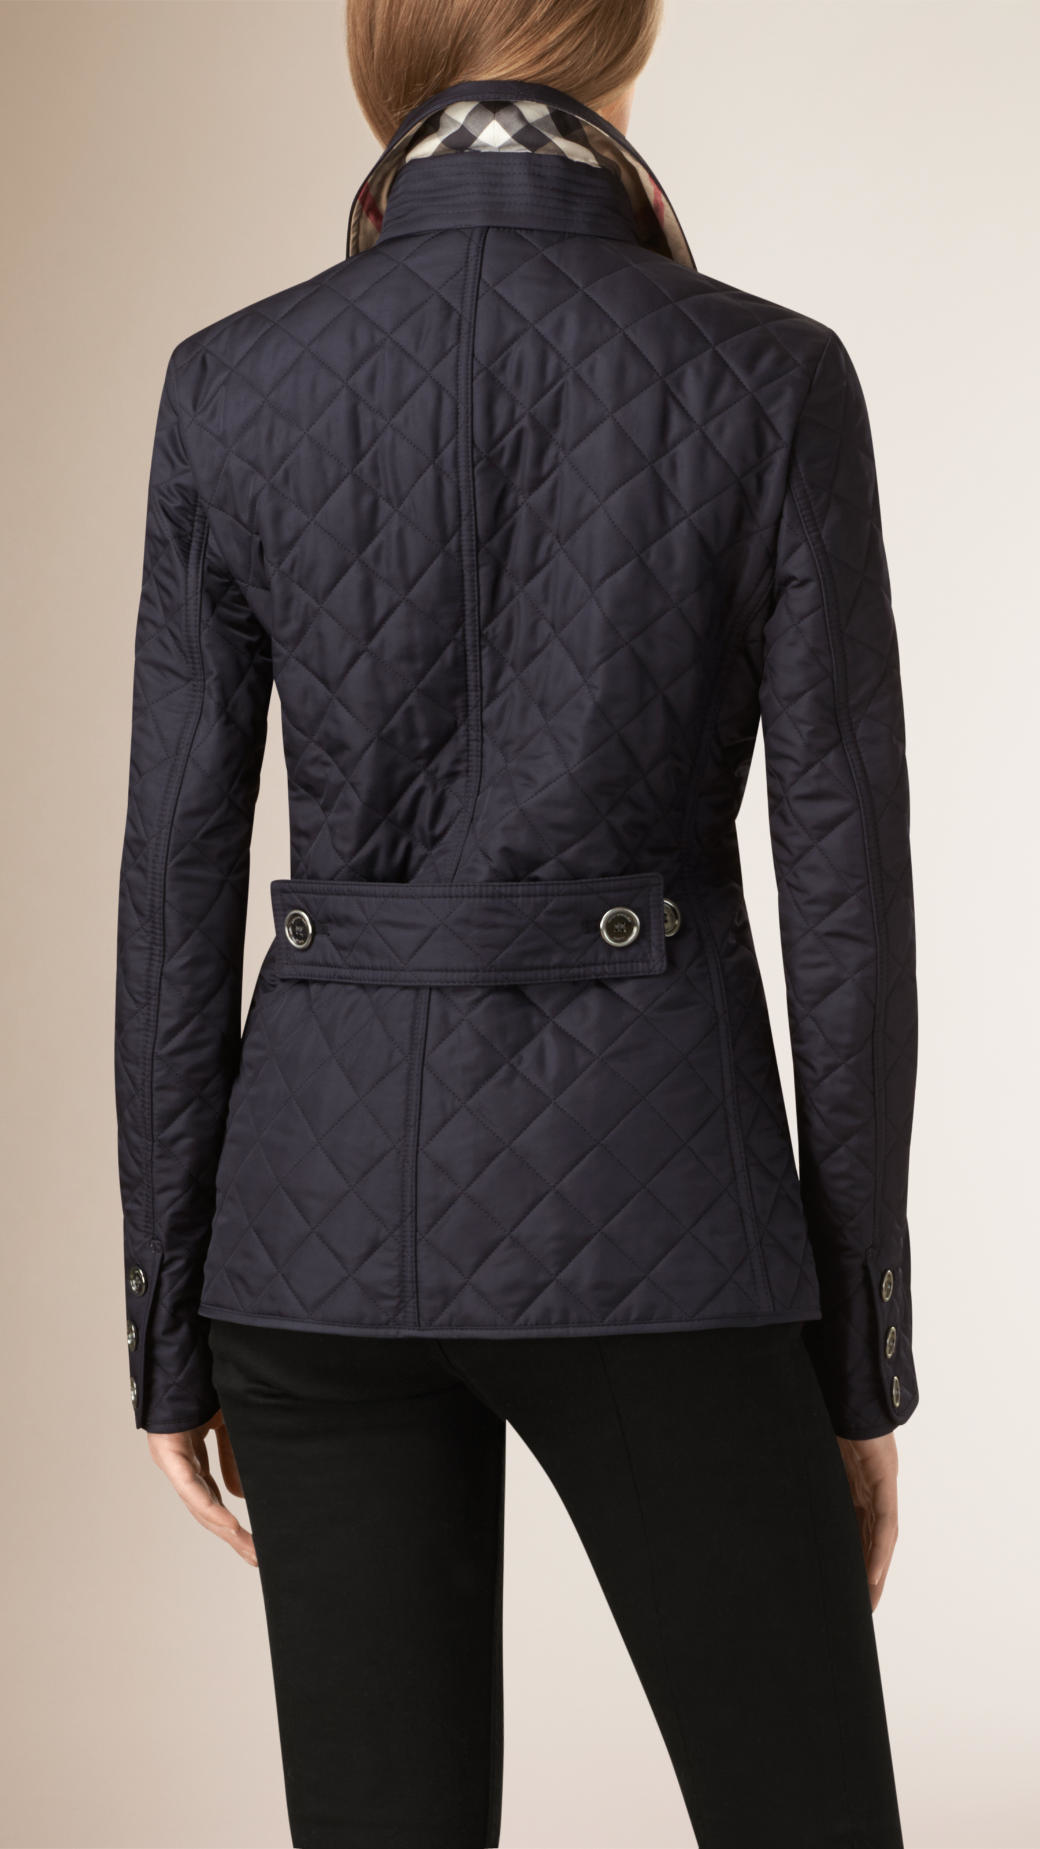 Burberry Diamond Quilted Jacket in Blue | Lyst : diamond quilted jacket burberry - Adamdwight.com